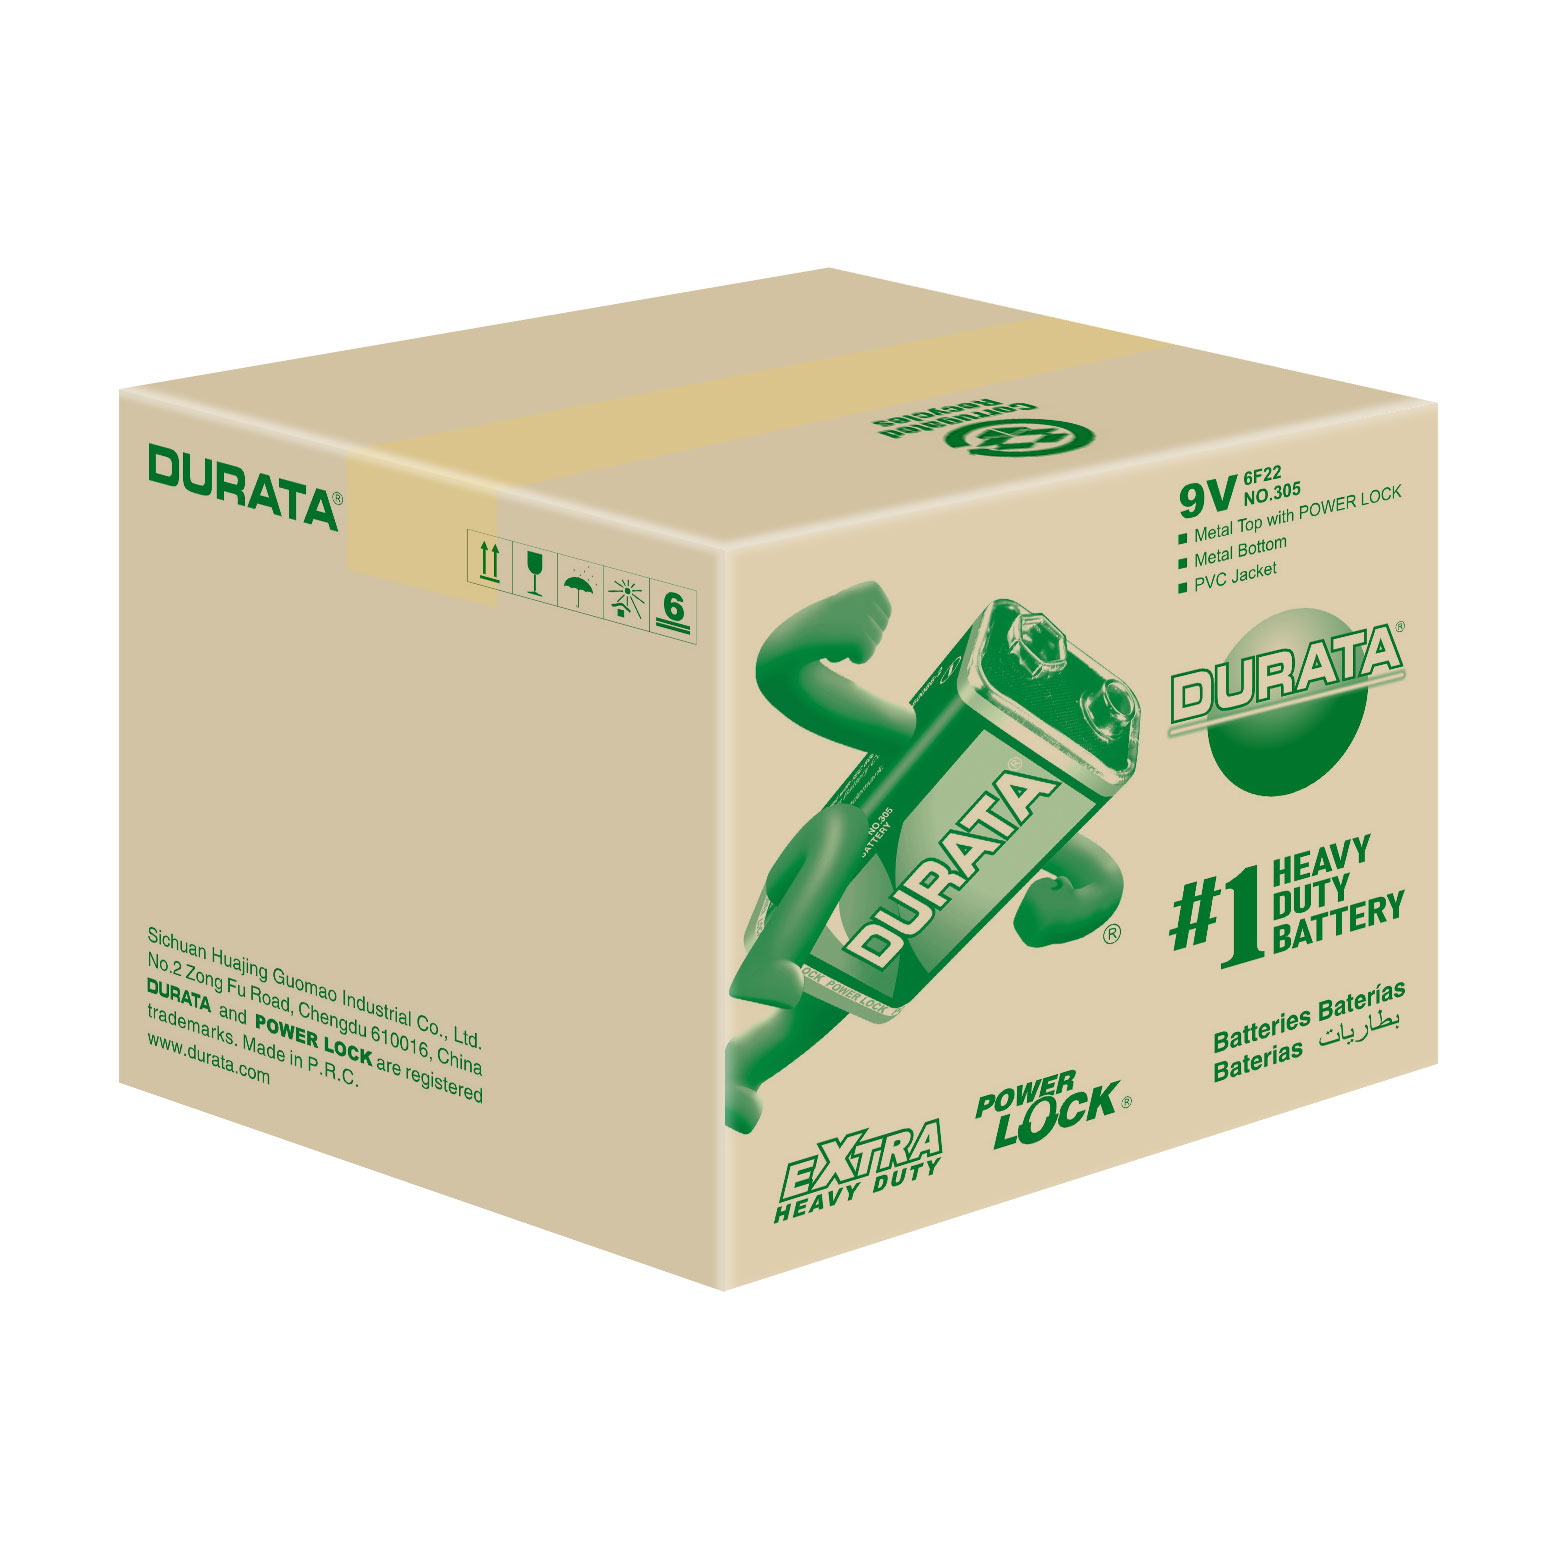 DURATA 9V - Shrink Pack 1 Battery - CTN